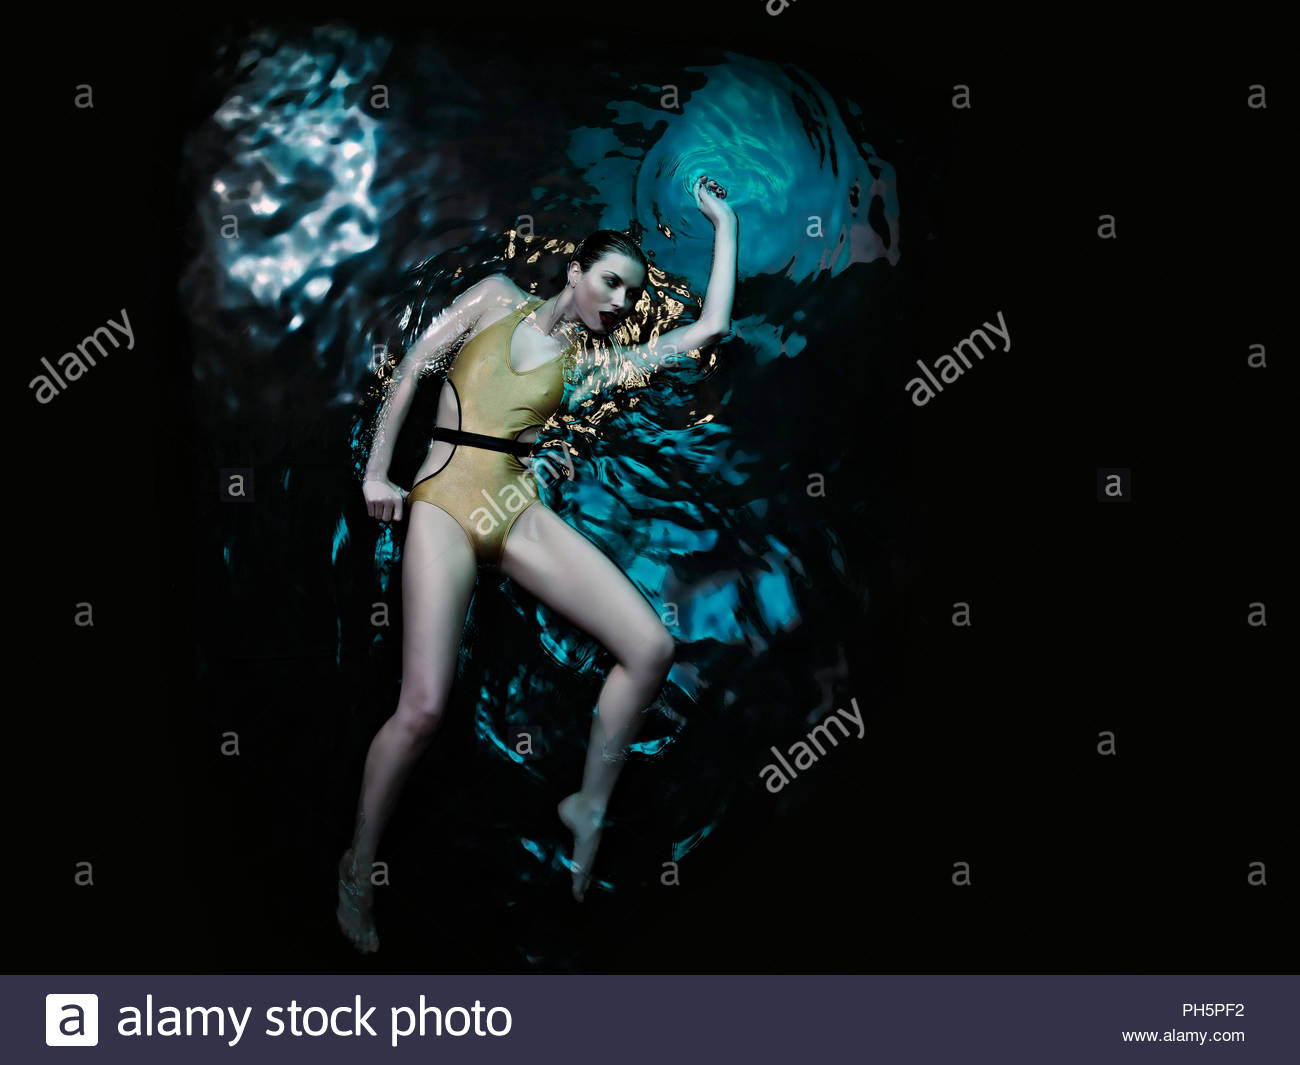 Young woman in swimsuit lying in water - Stock Image